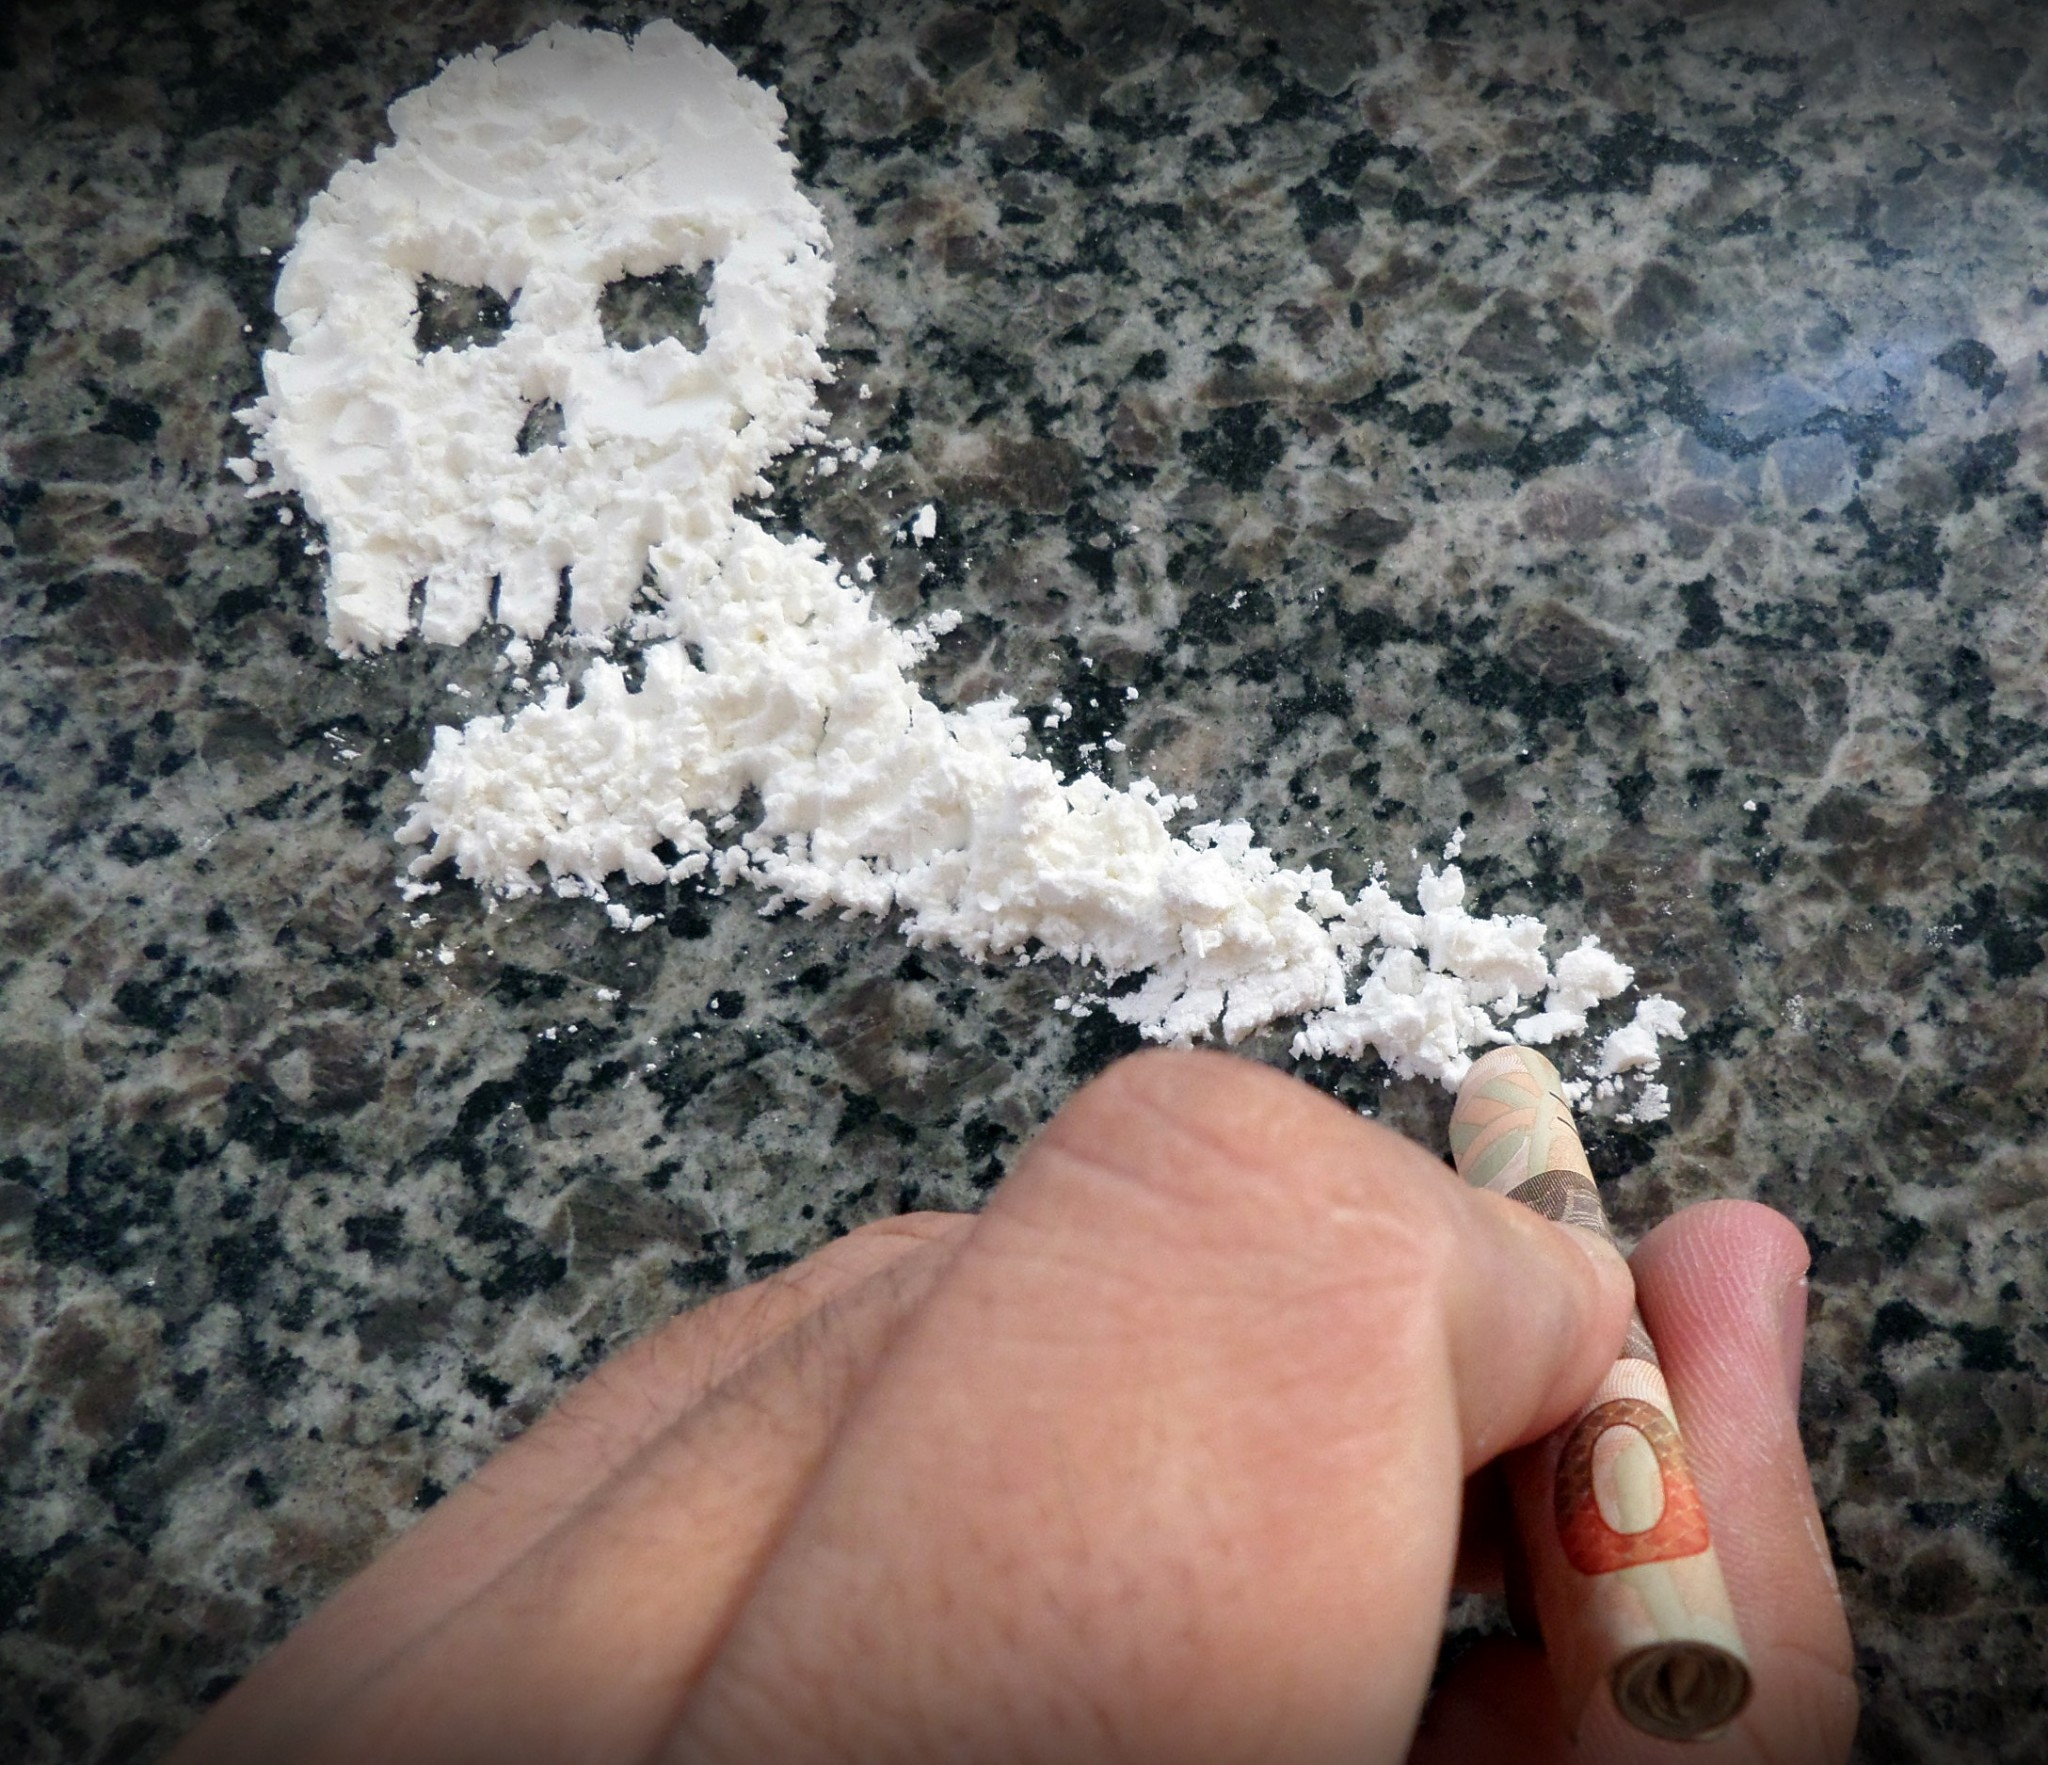 Experts argue the legal high ban could put users at higher risk – Loaded